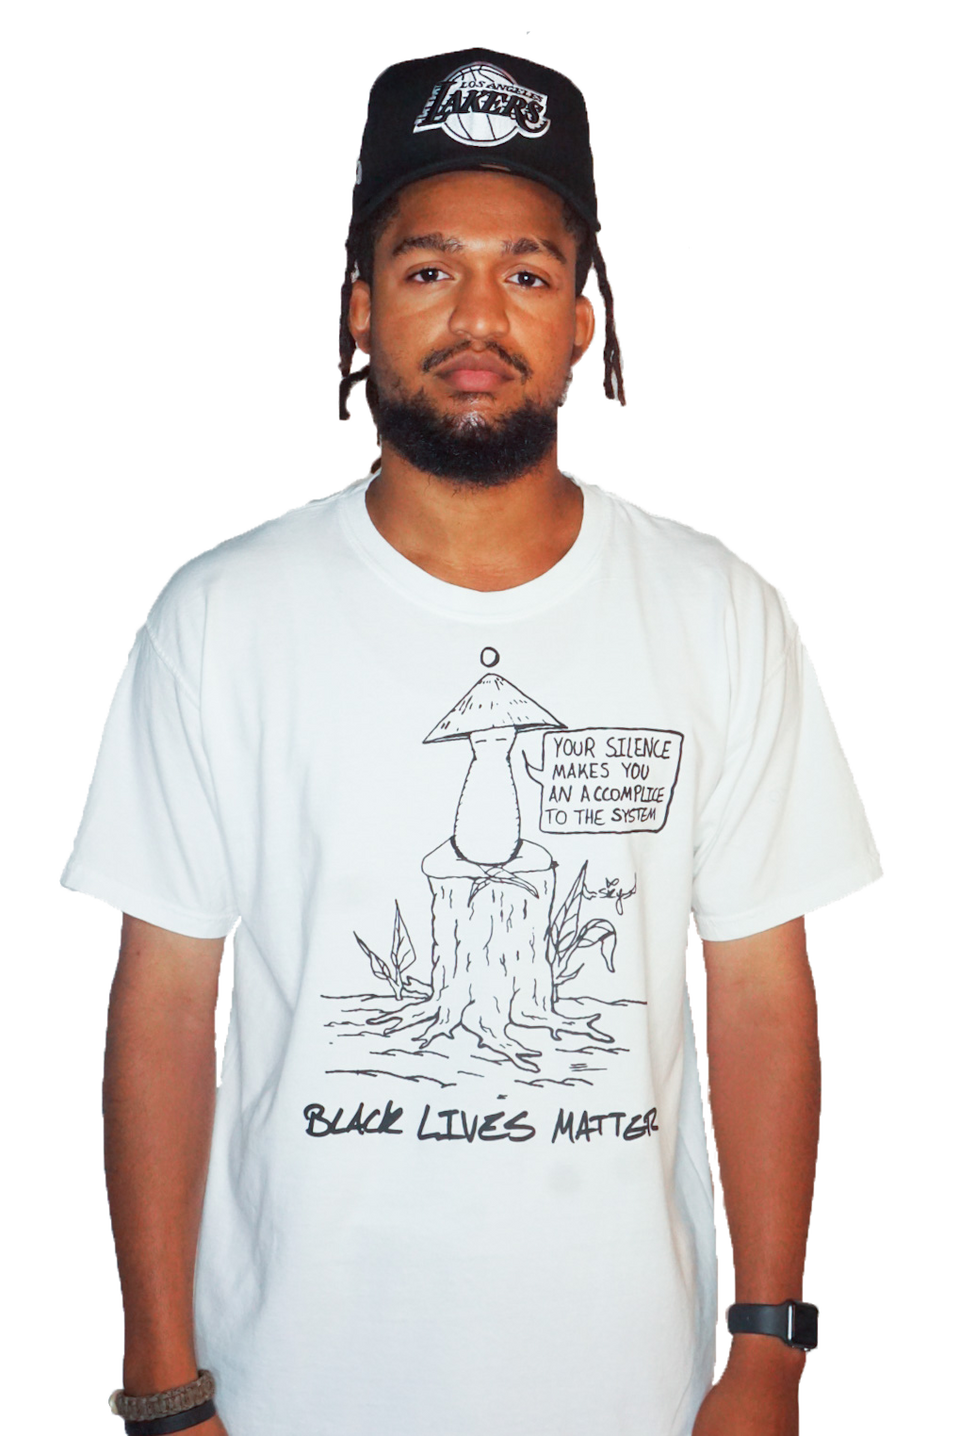 BLM Accomplice Tee